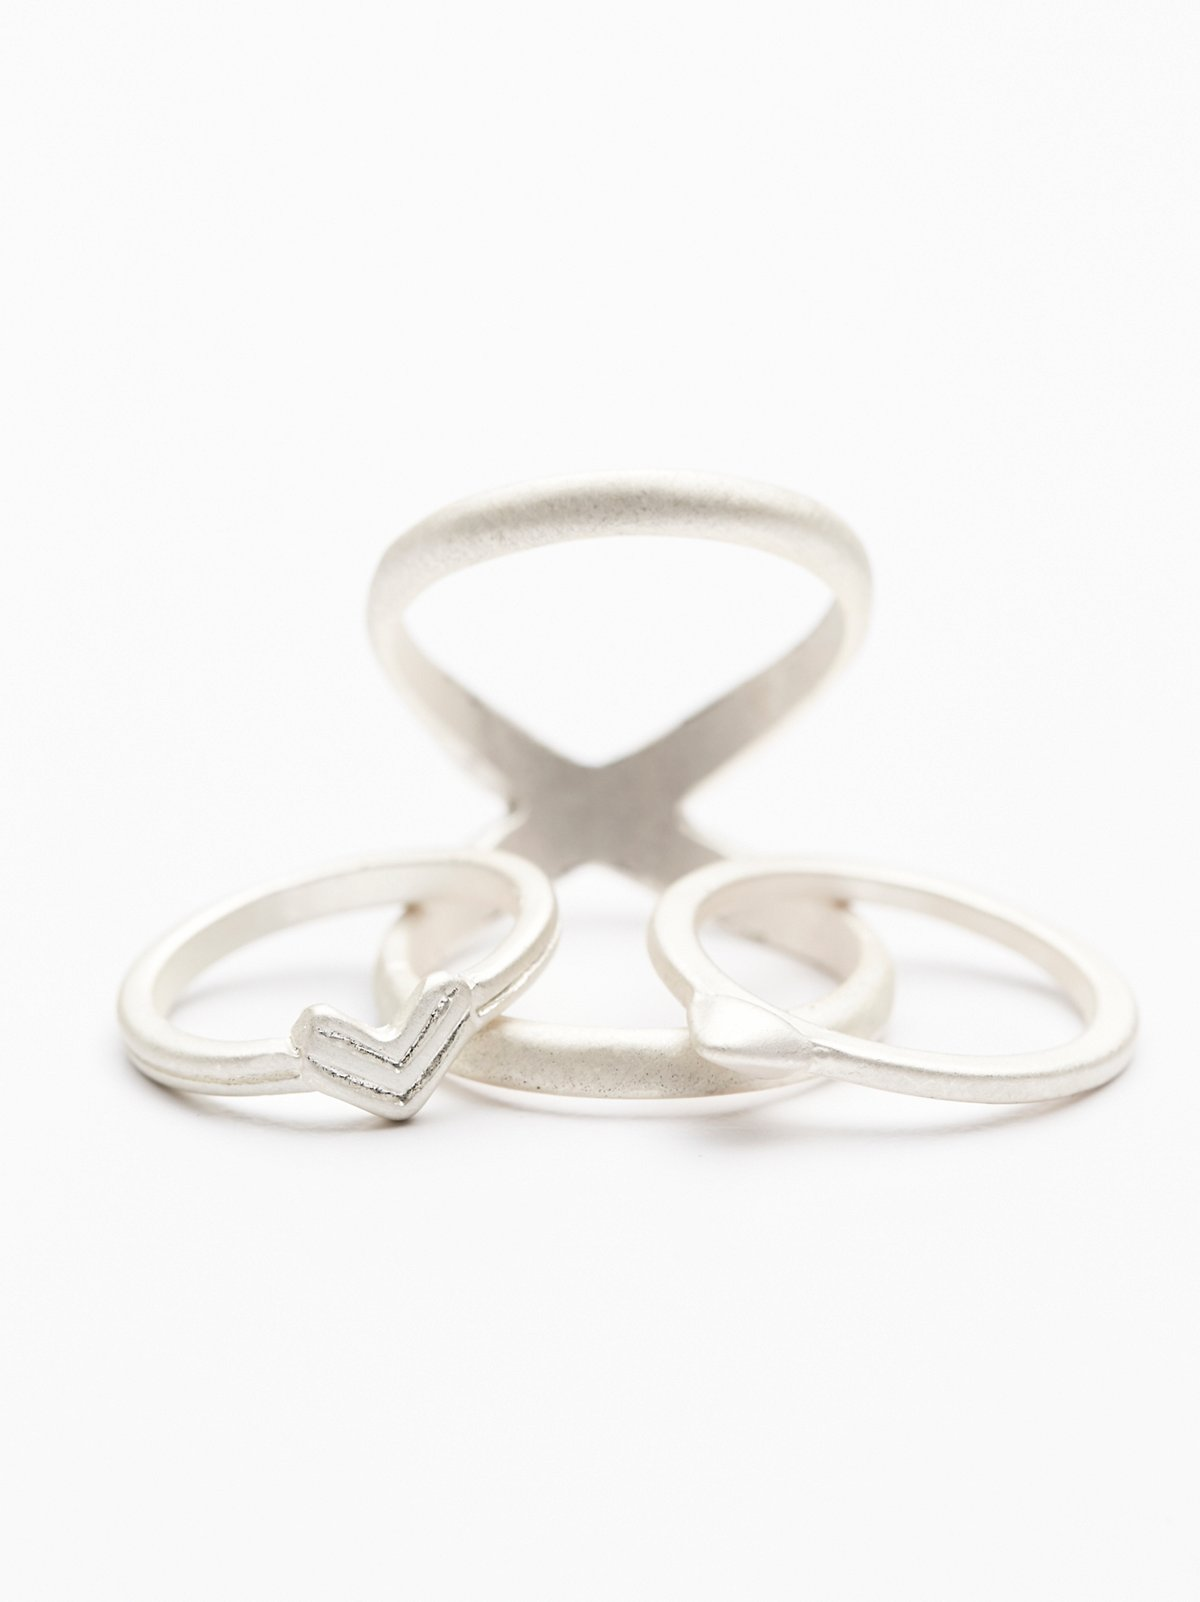 Matte Metal Ring Set